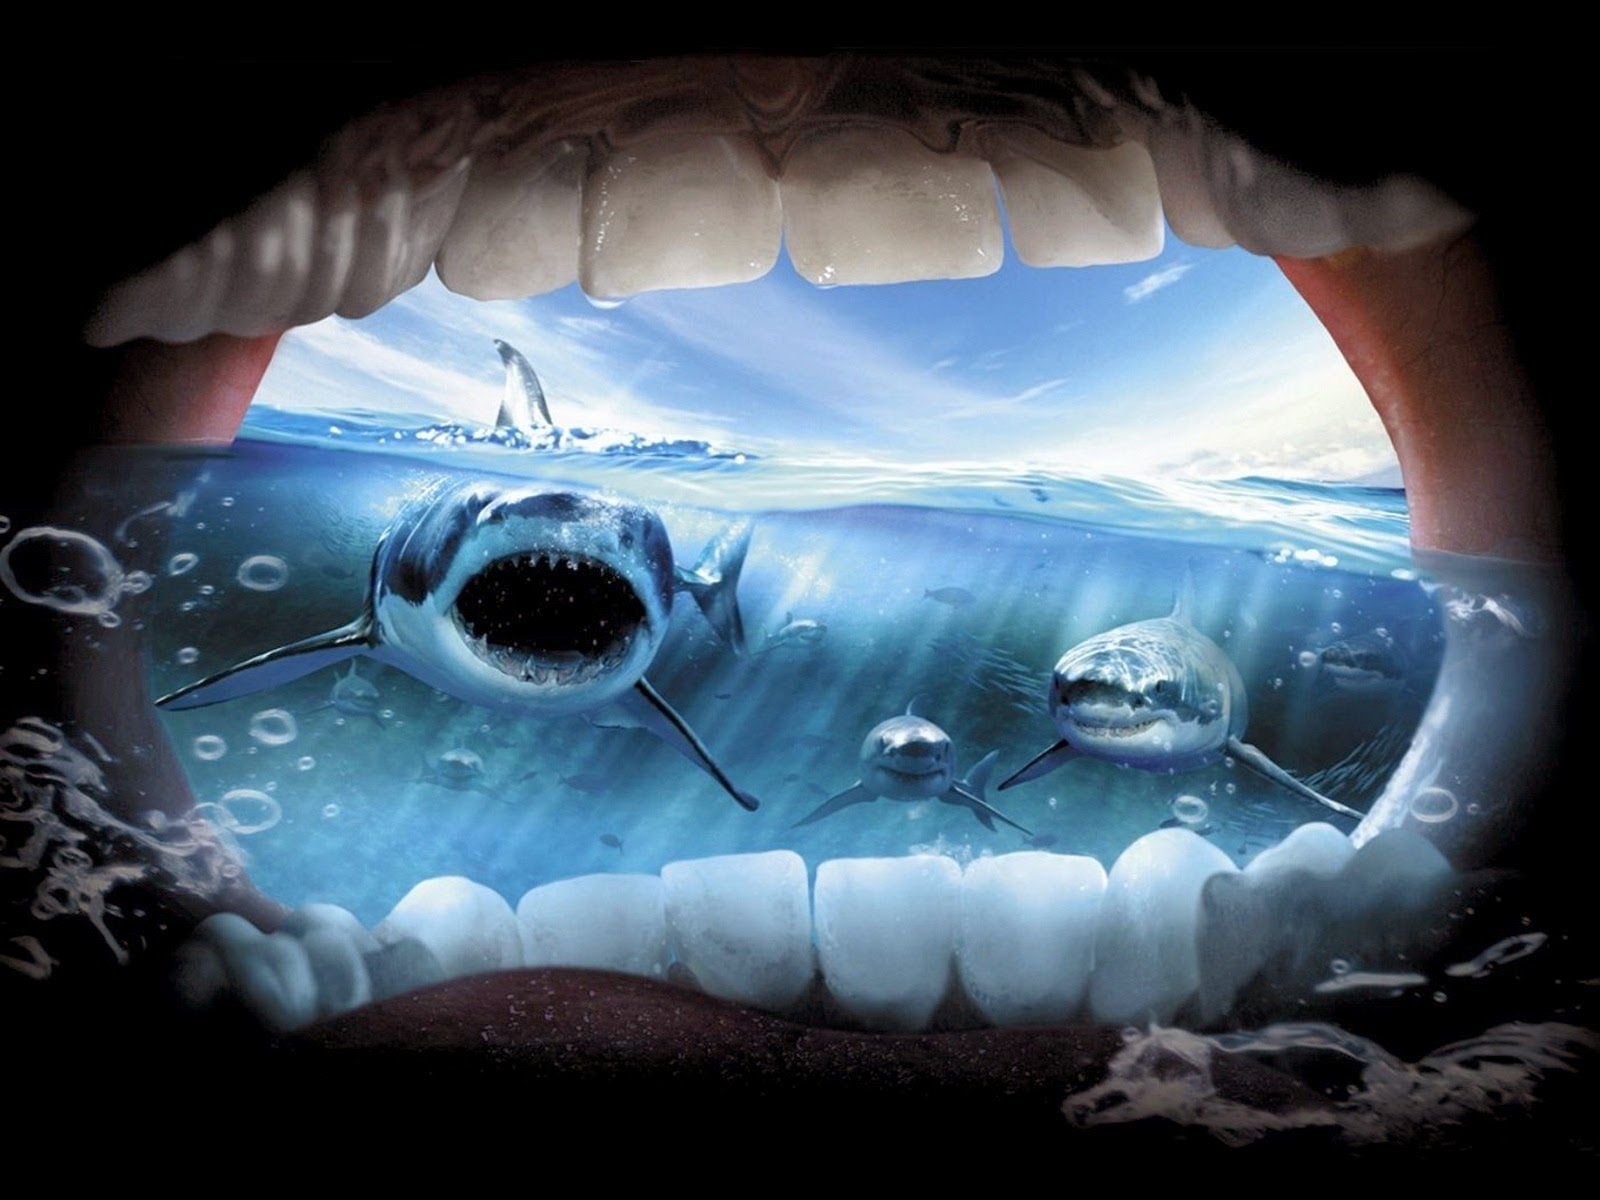 shark-inside-mouth-best-creative-wallpapers-for-sharing.jpg